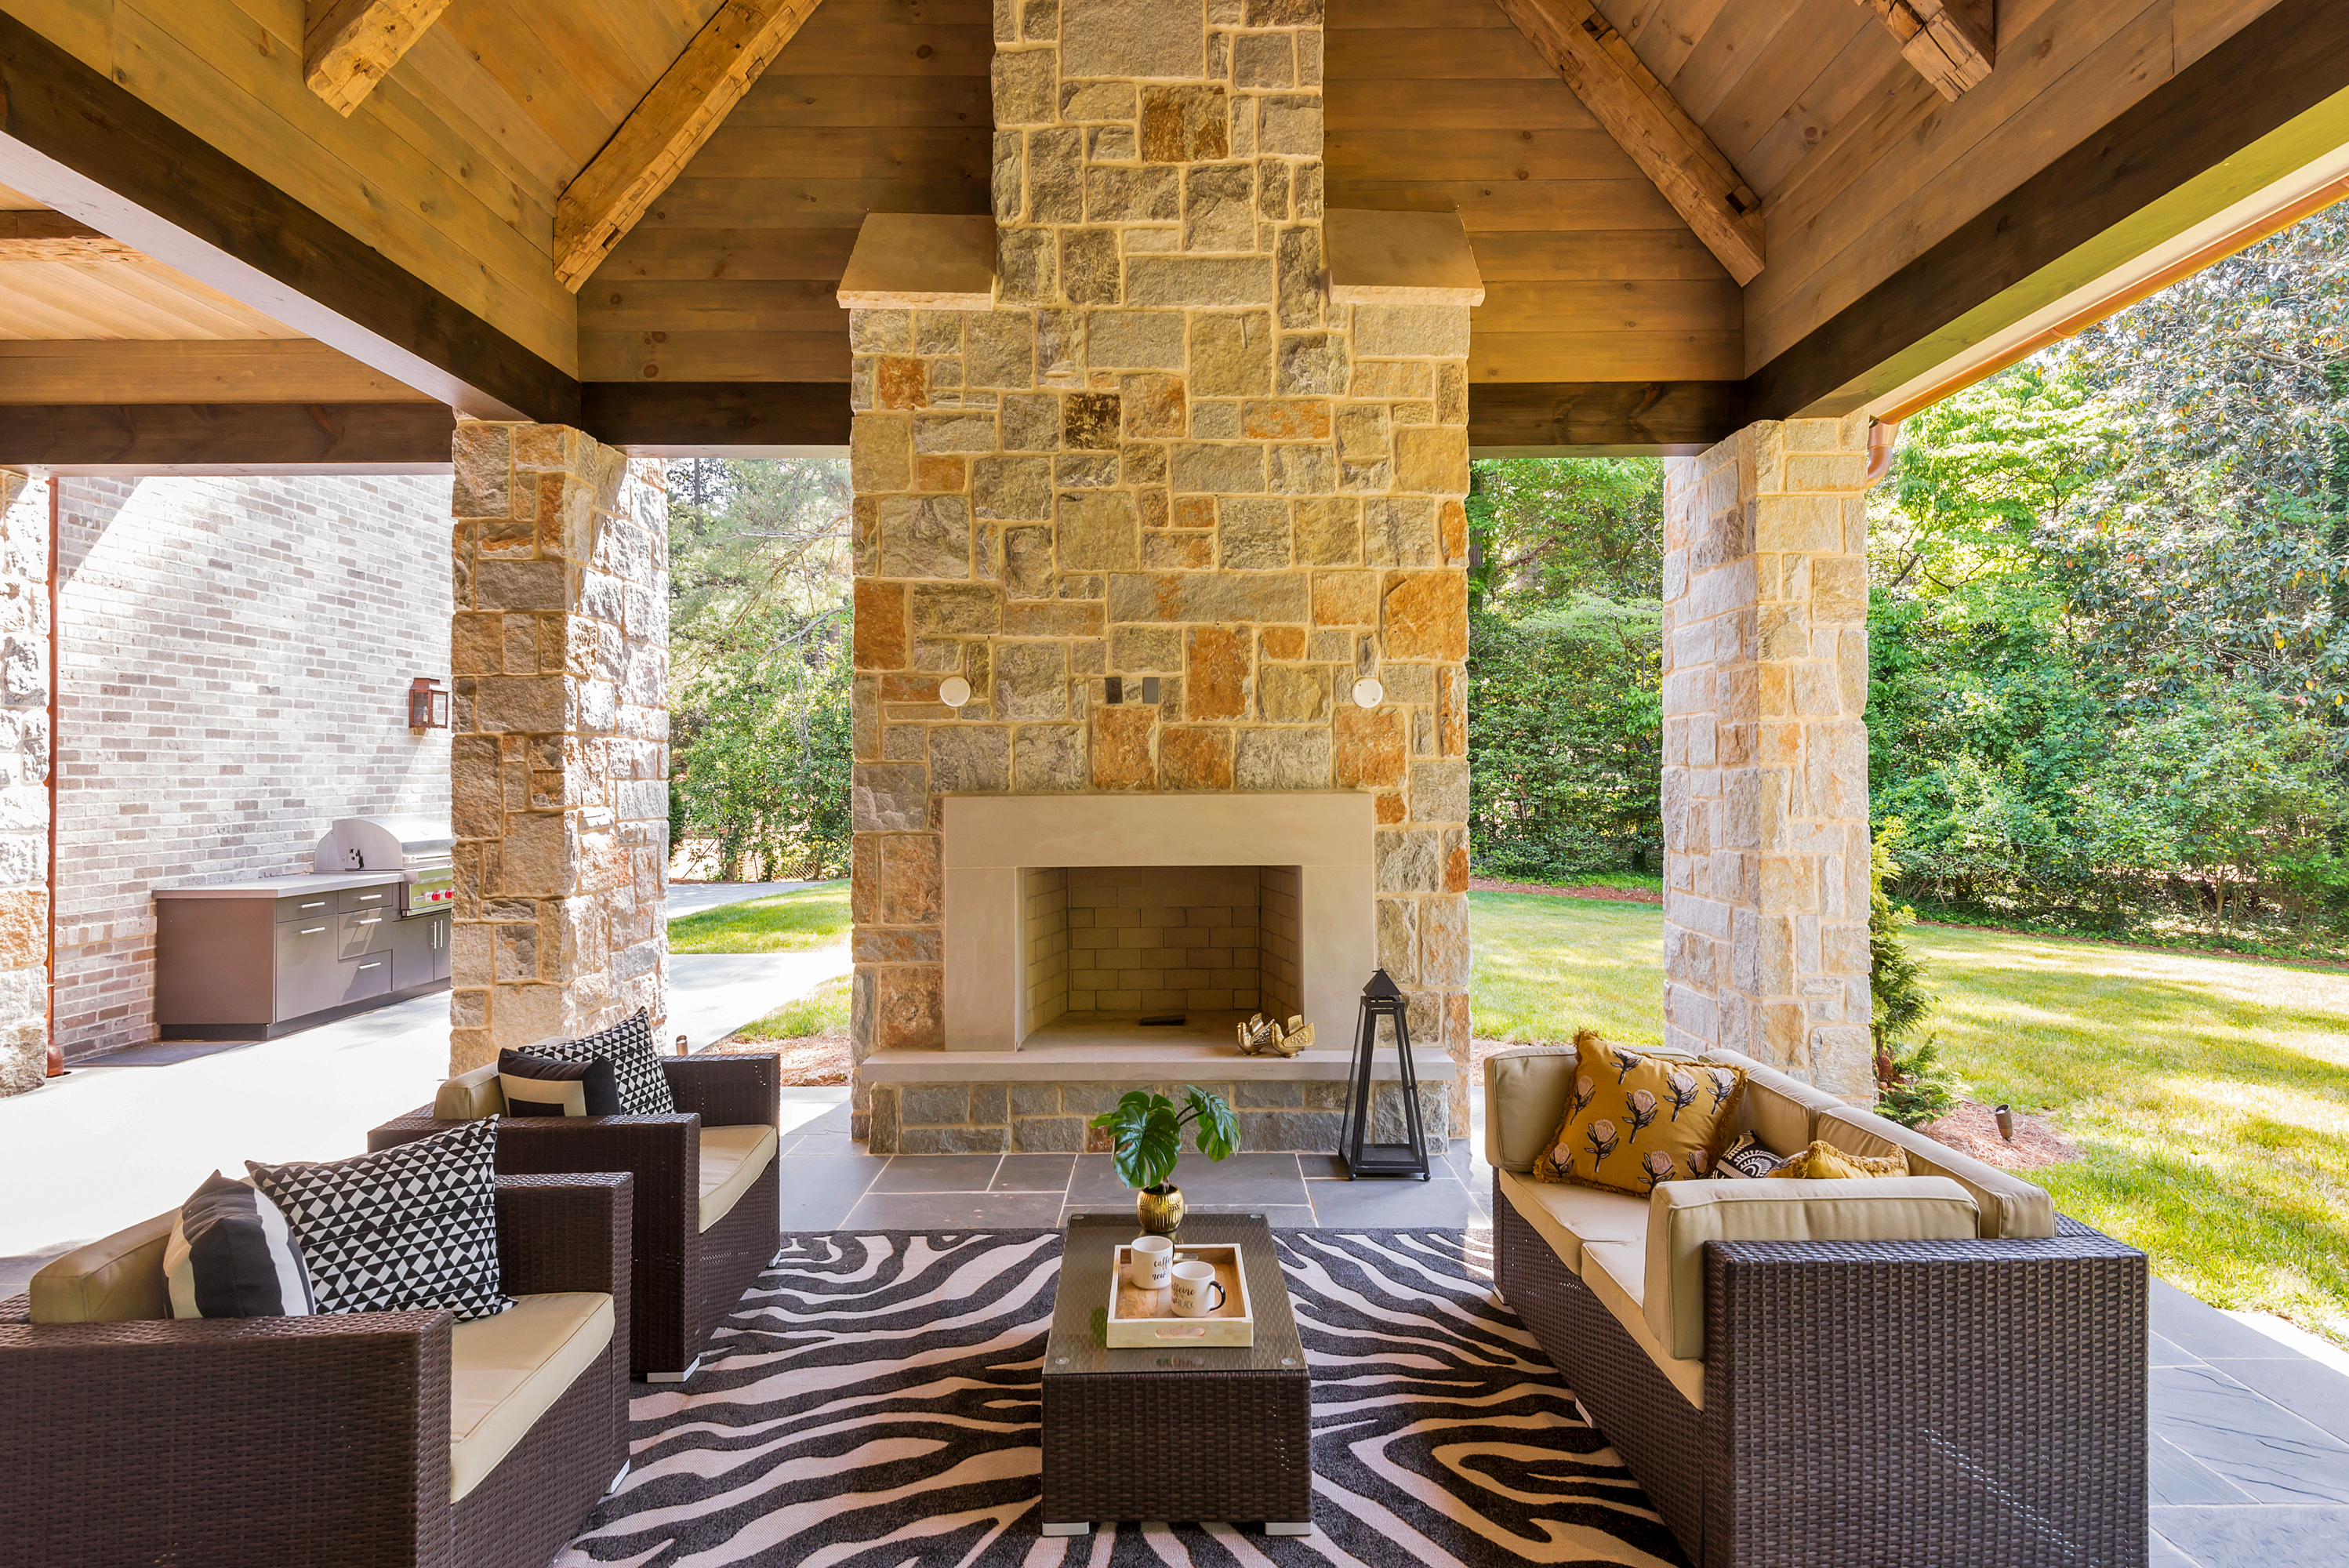 Outdoor Living Spaces Designed for Comfort | Design2Sell ... on Small Backyard Living Spaces id=94418